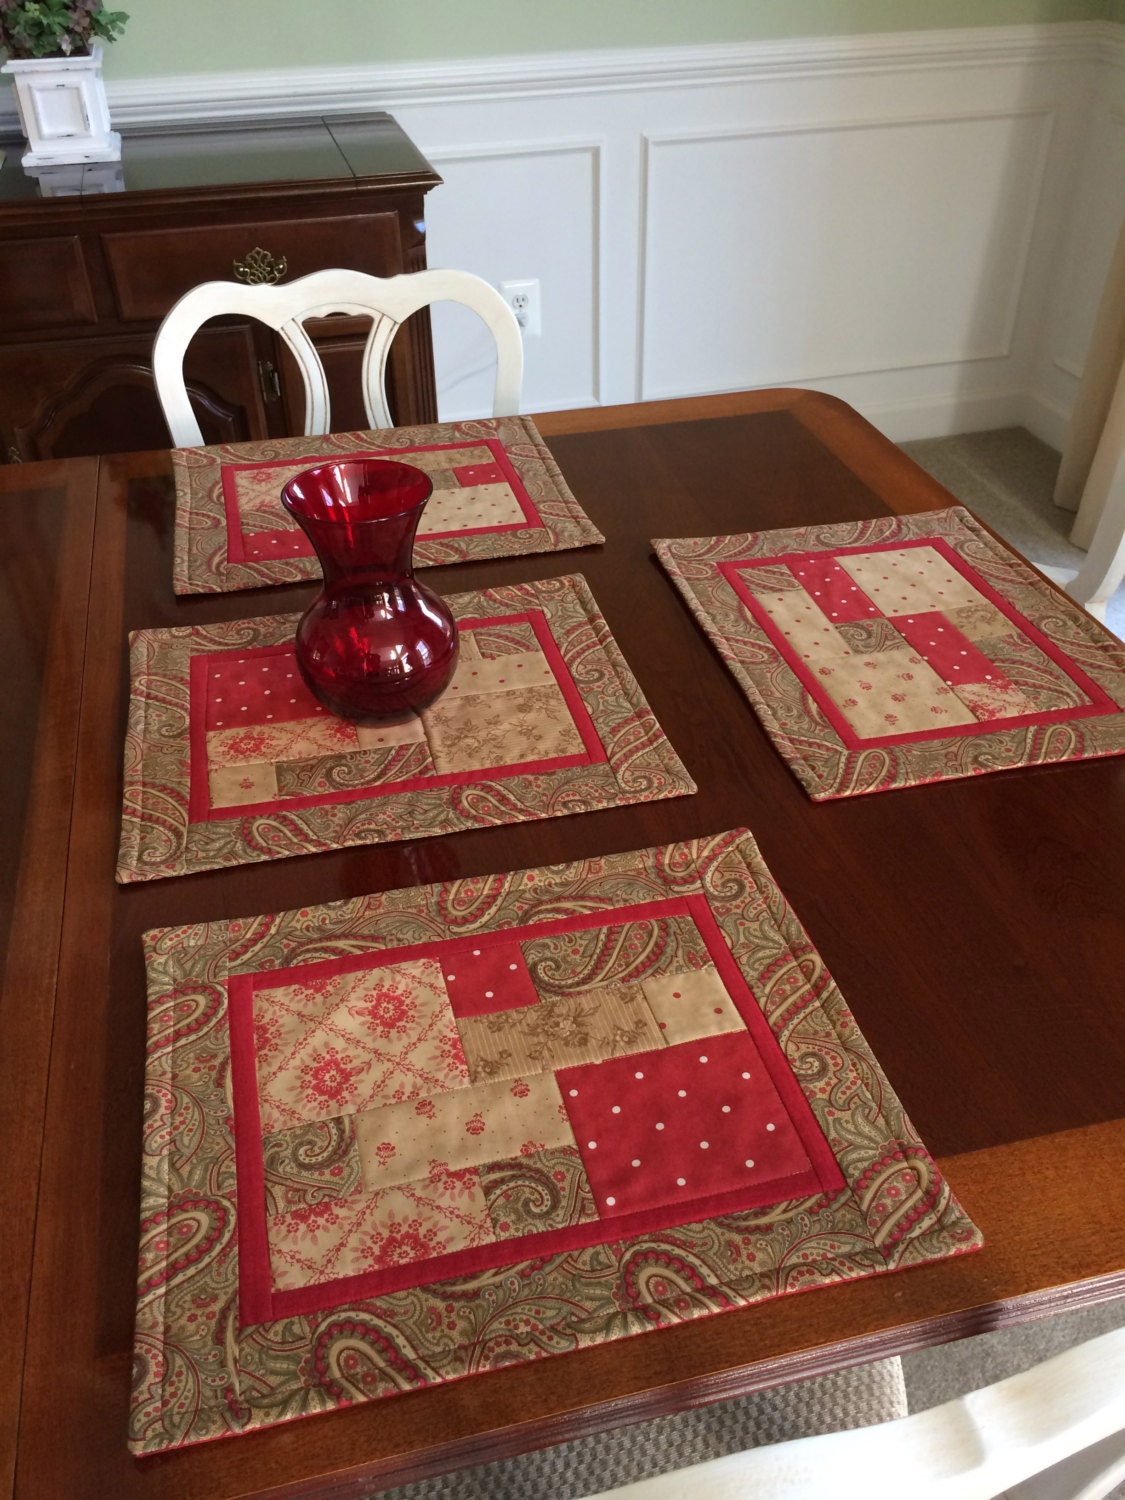 4 Quilted Placemats In Red Moda Fabrics For Year Round Use